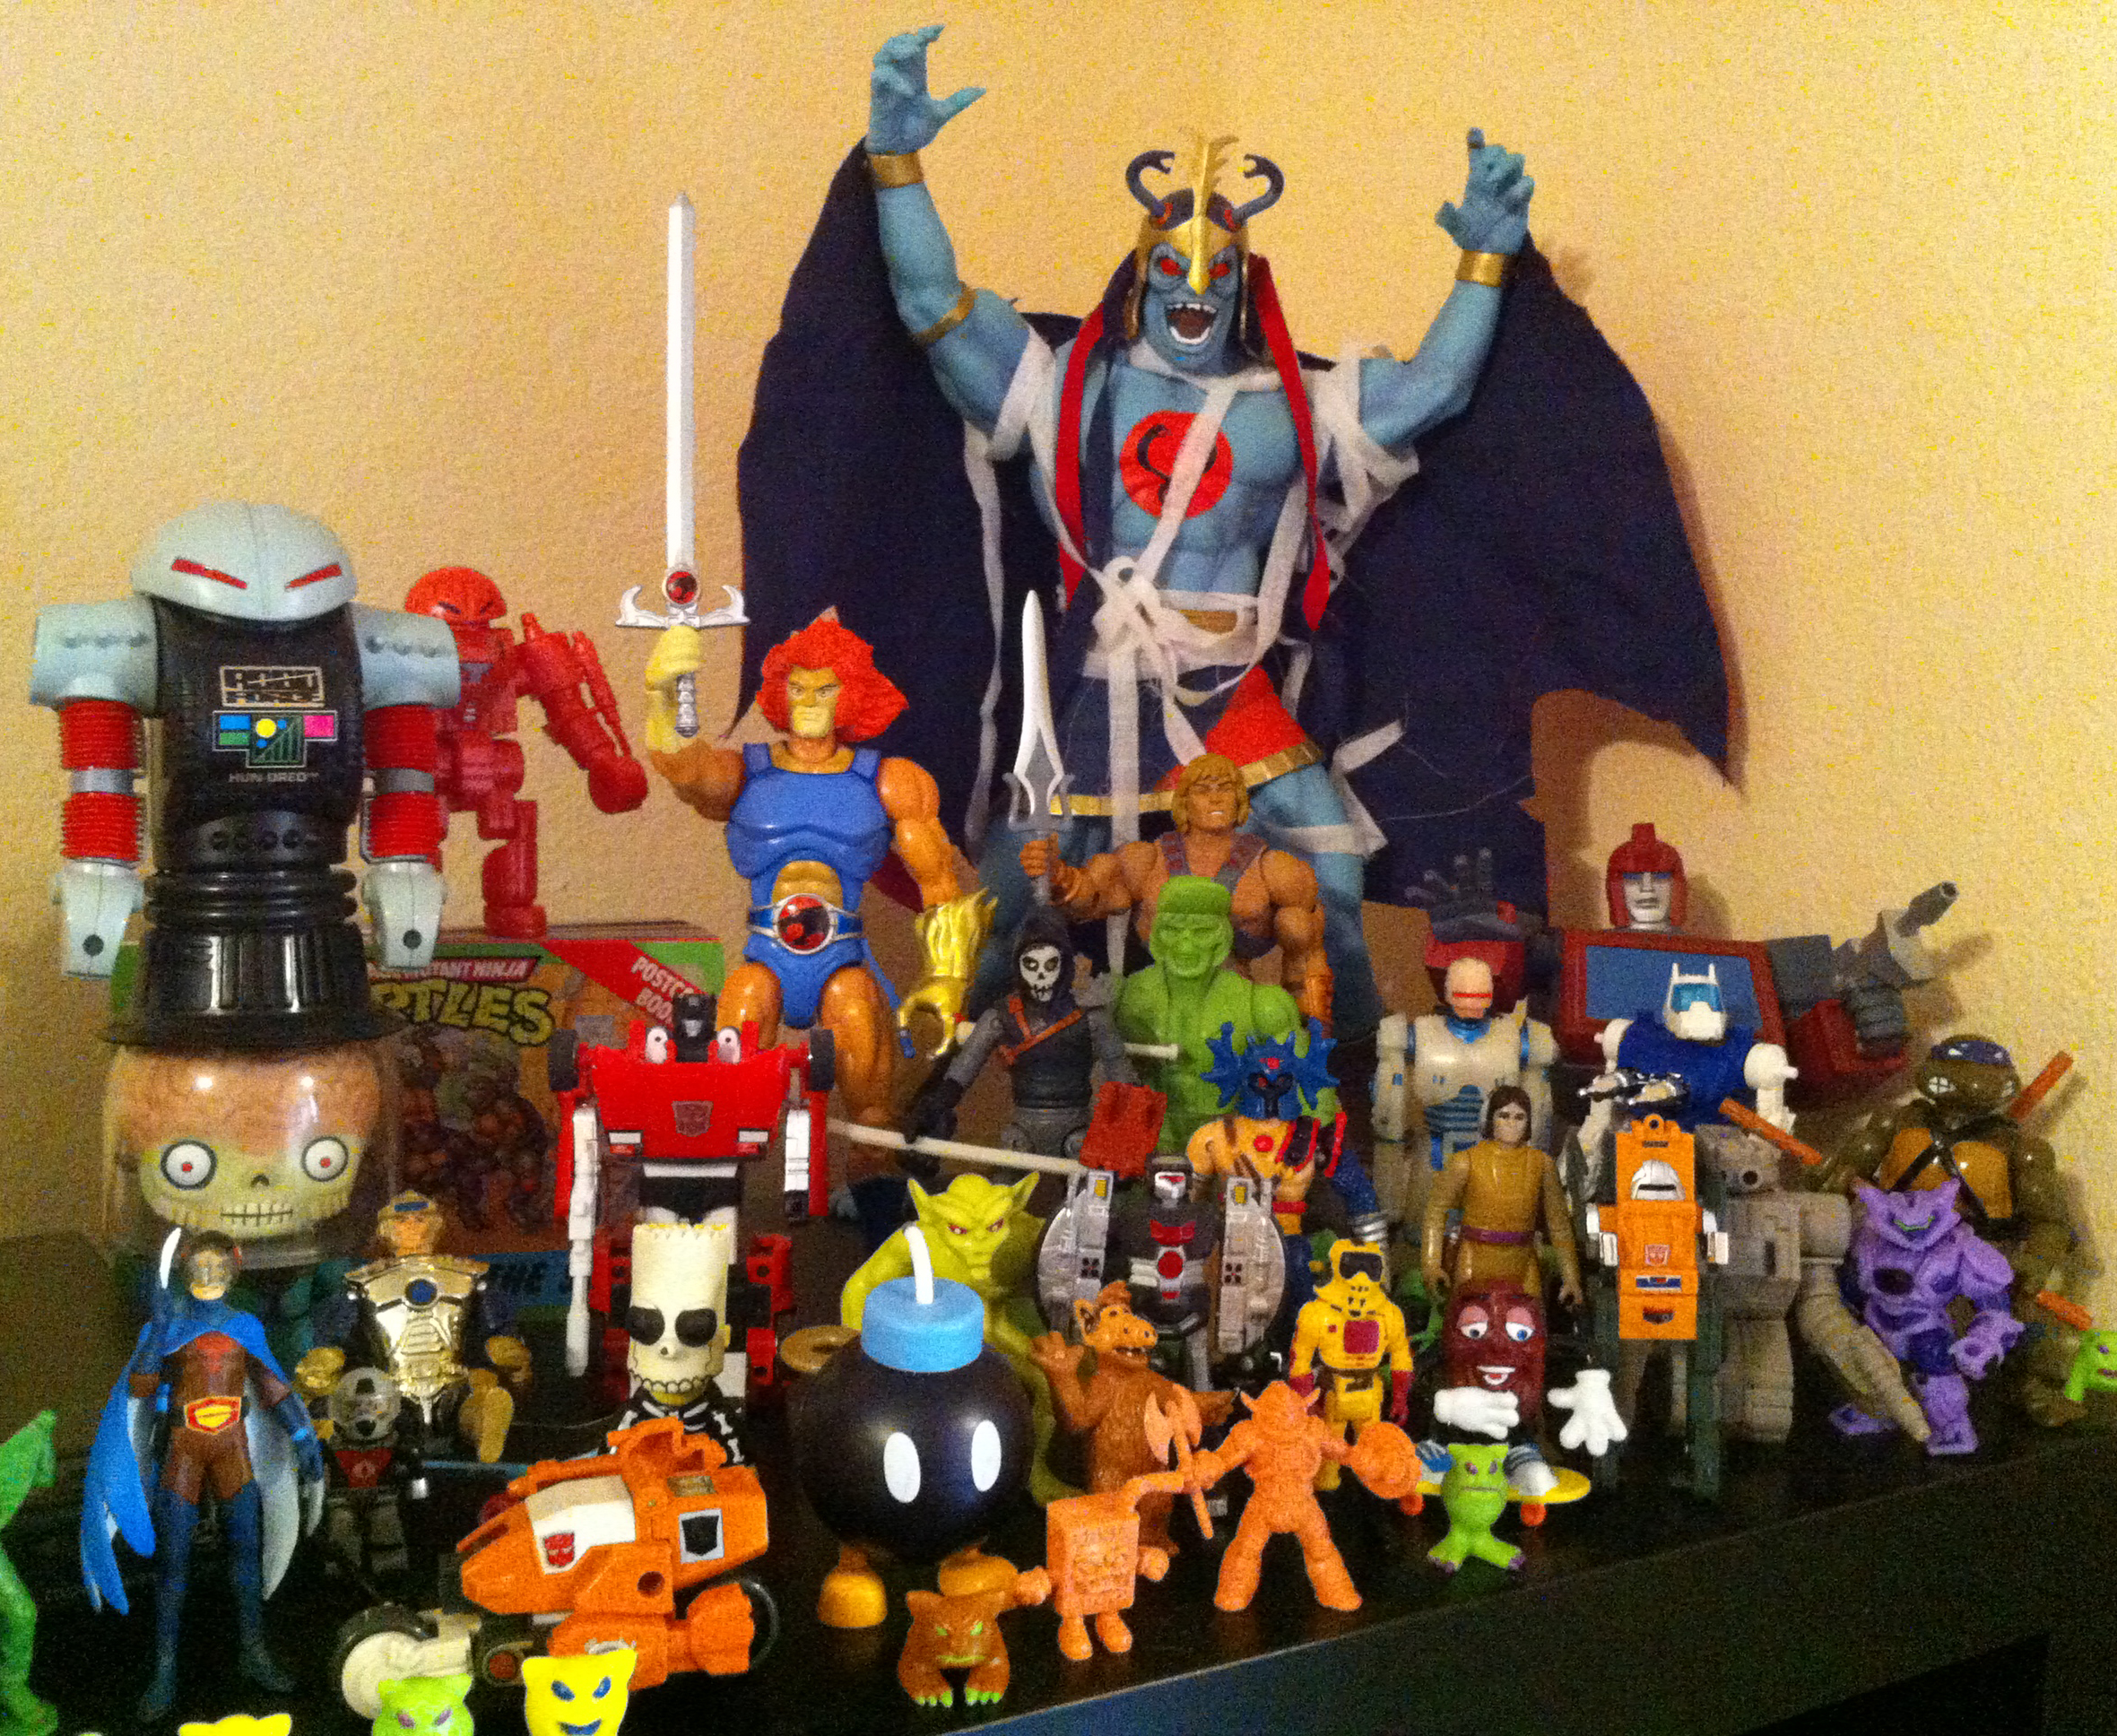 80 Toy Action Figure Shelves - Toys_Fantastic 80 Toy Action Figure Shelves - Toys  Graphic_24653.jpg